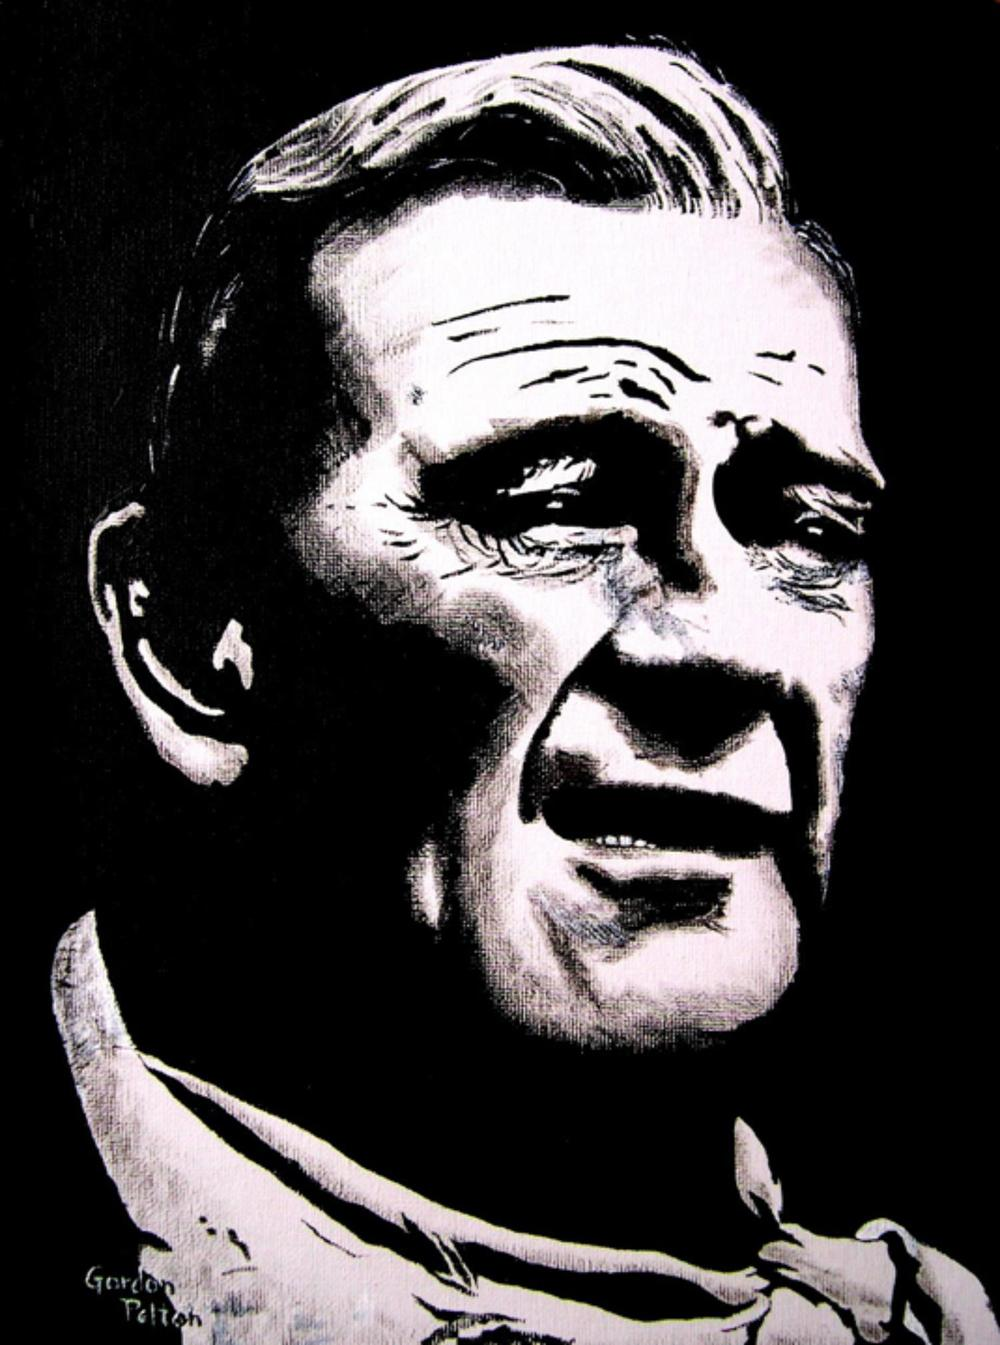 "John Wayne 12"" x 16"" Unframed-Canvas Acrylic $750 Giclee Copies Available PLACE ORDER"